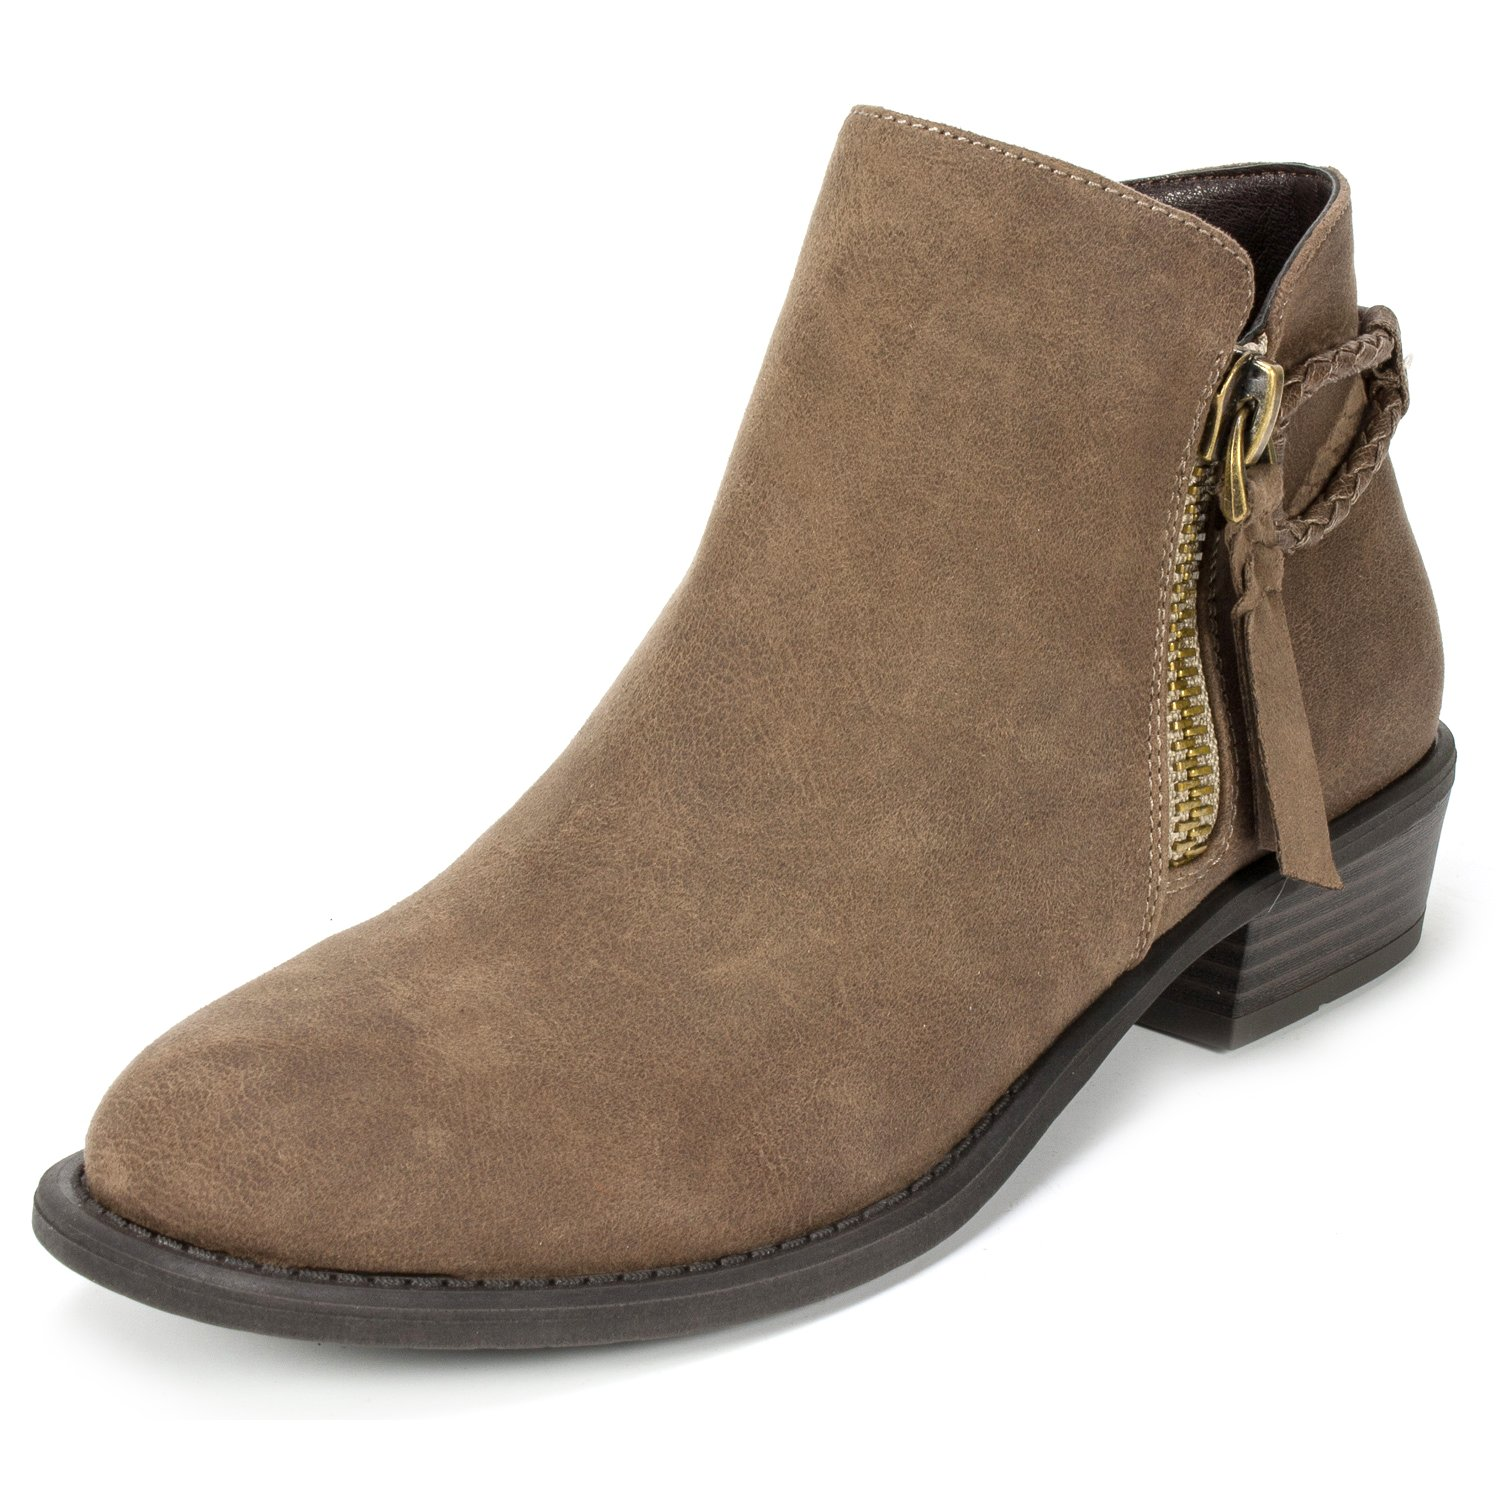 WHITE MOUNTAIN Women's Dart Ankle Boot B0761S6Q6J 7.5 B(M) US|Dark Taupe